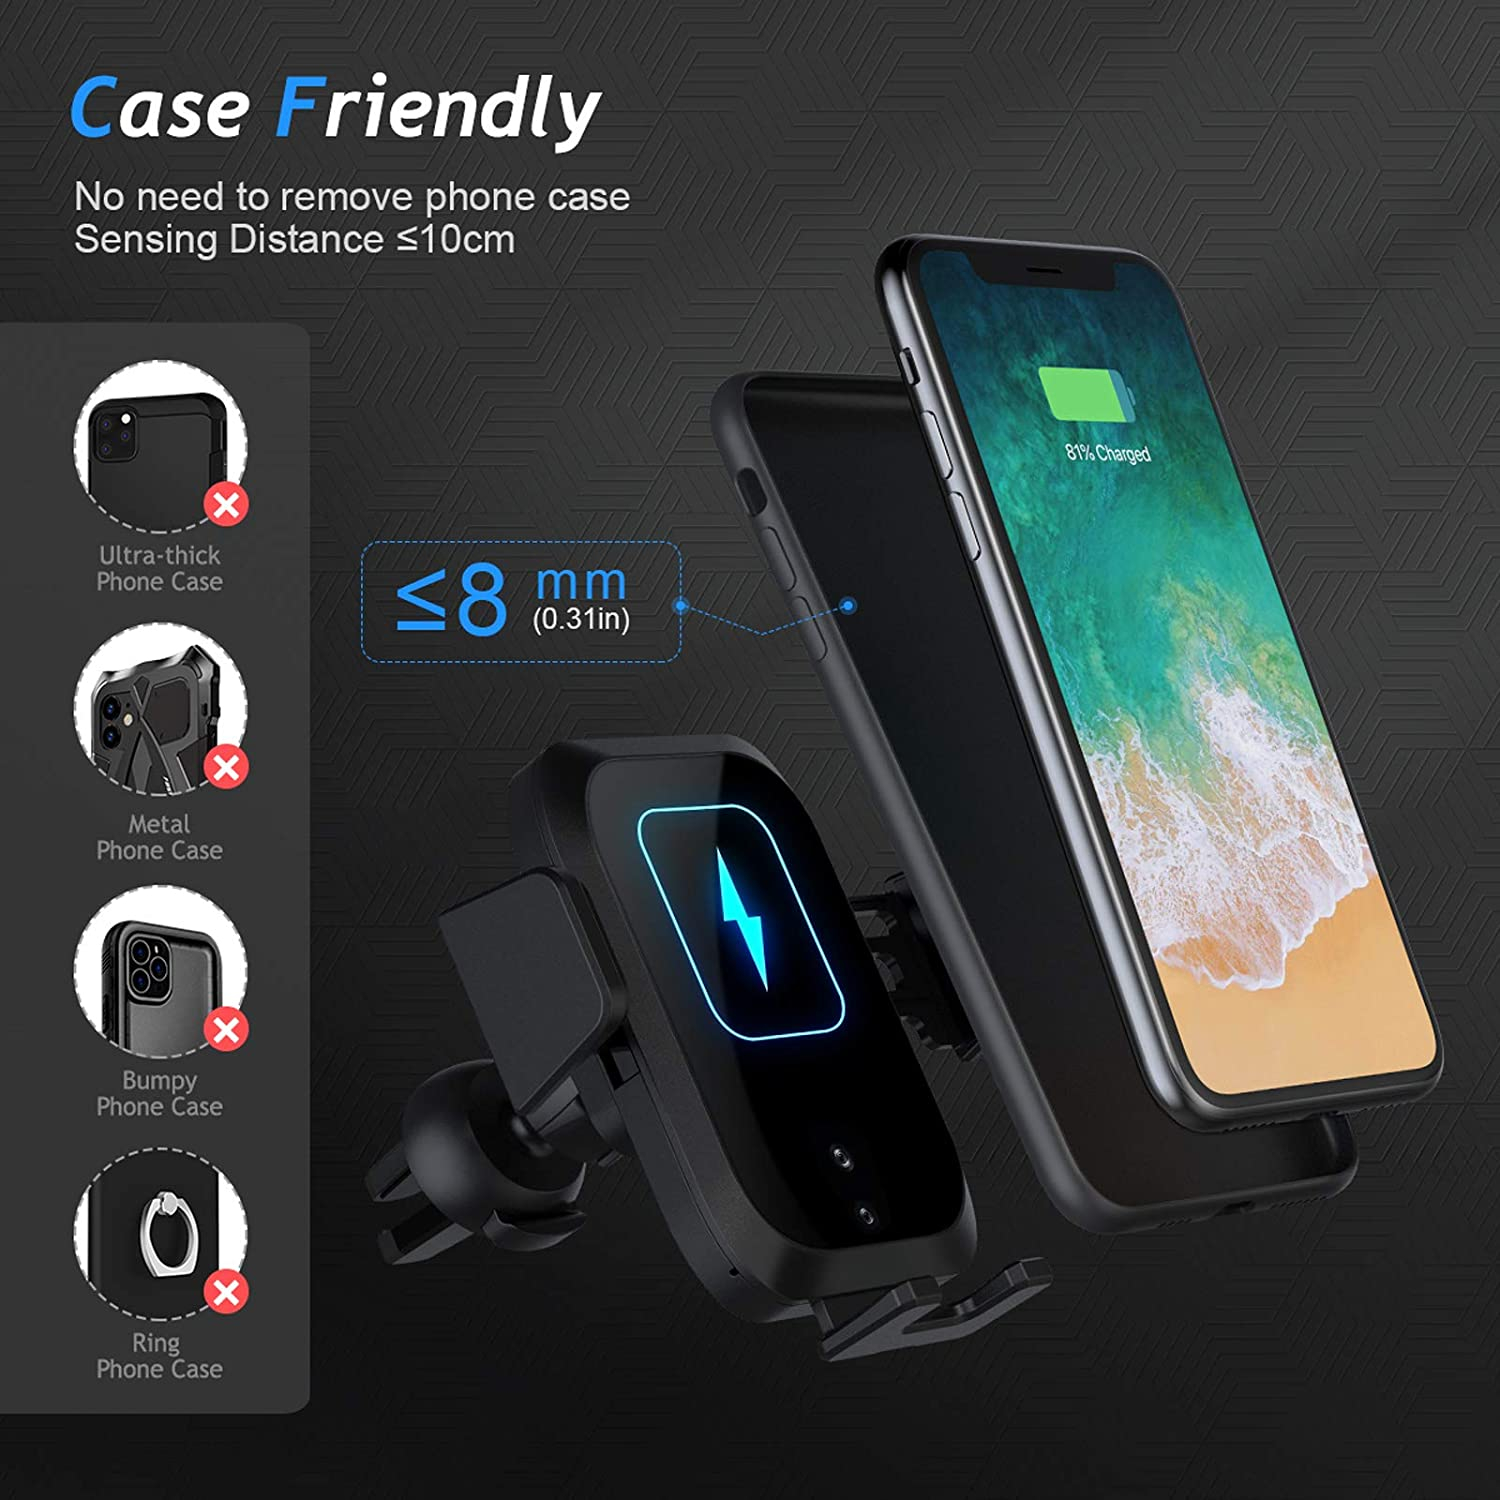 BILLKAQ Wireless Car Charger,15W 10W Qi Fast Charging Car Mount Charger Auto-Clamping Air Vent Car Phone Holder Compatible with iPhone 12//11 Pro//Xs MAX//XS//XR Samsung S10//S9//S8 /& Other Qi Smartphone